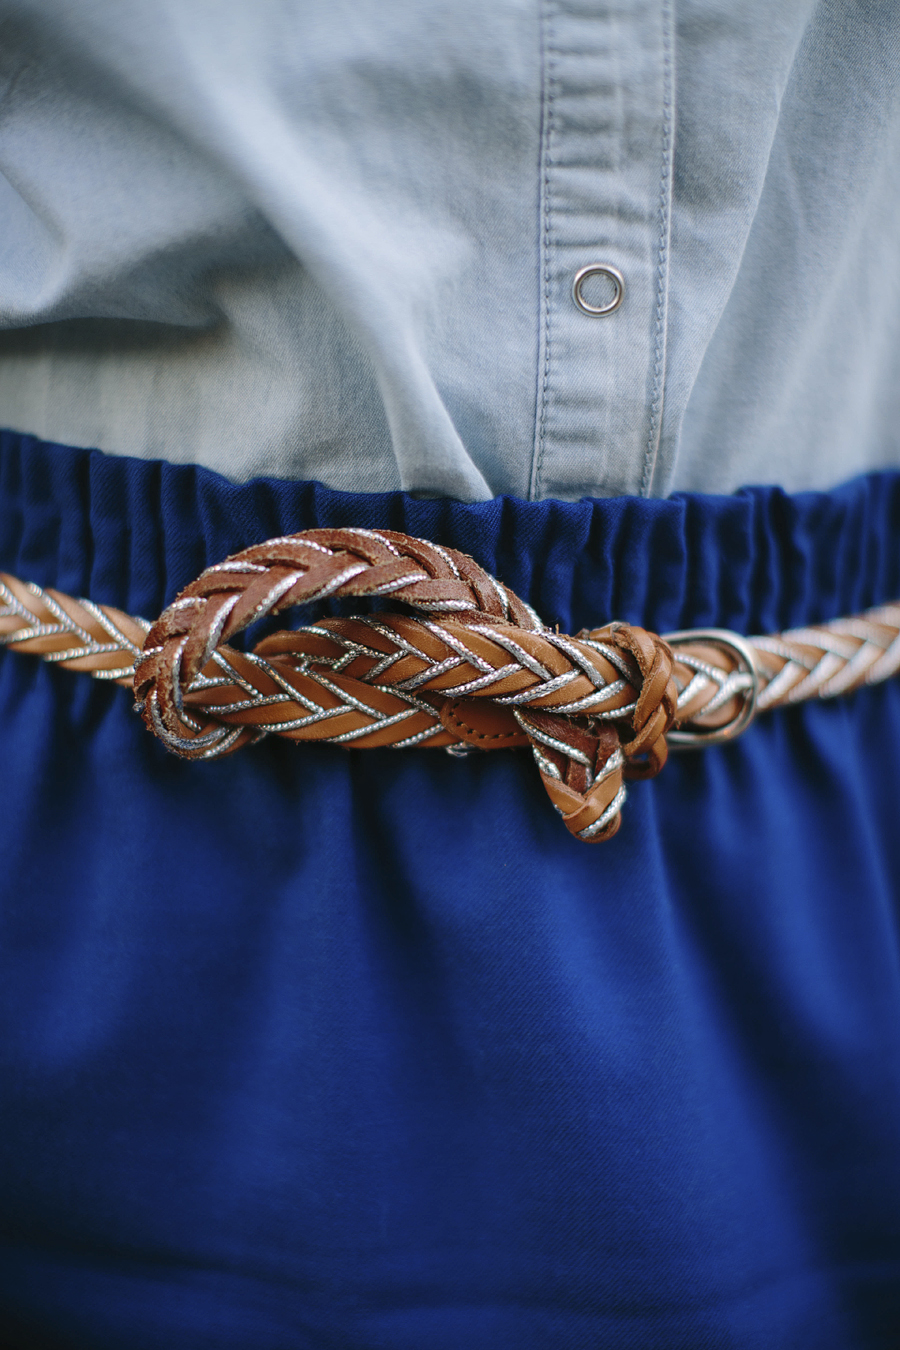 To get this fun looped belt look, see below!